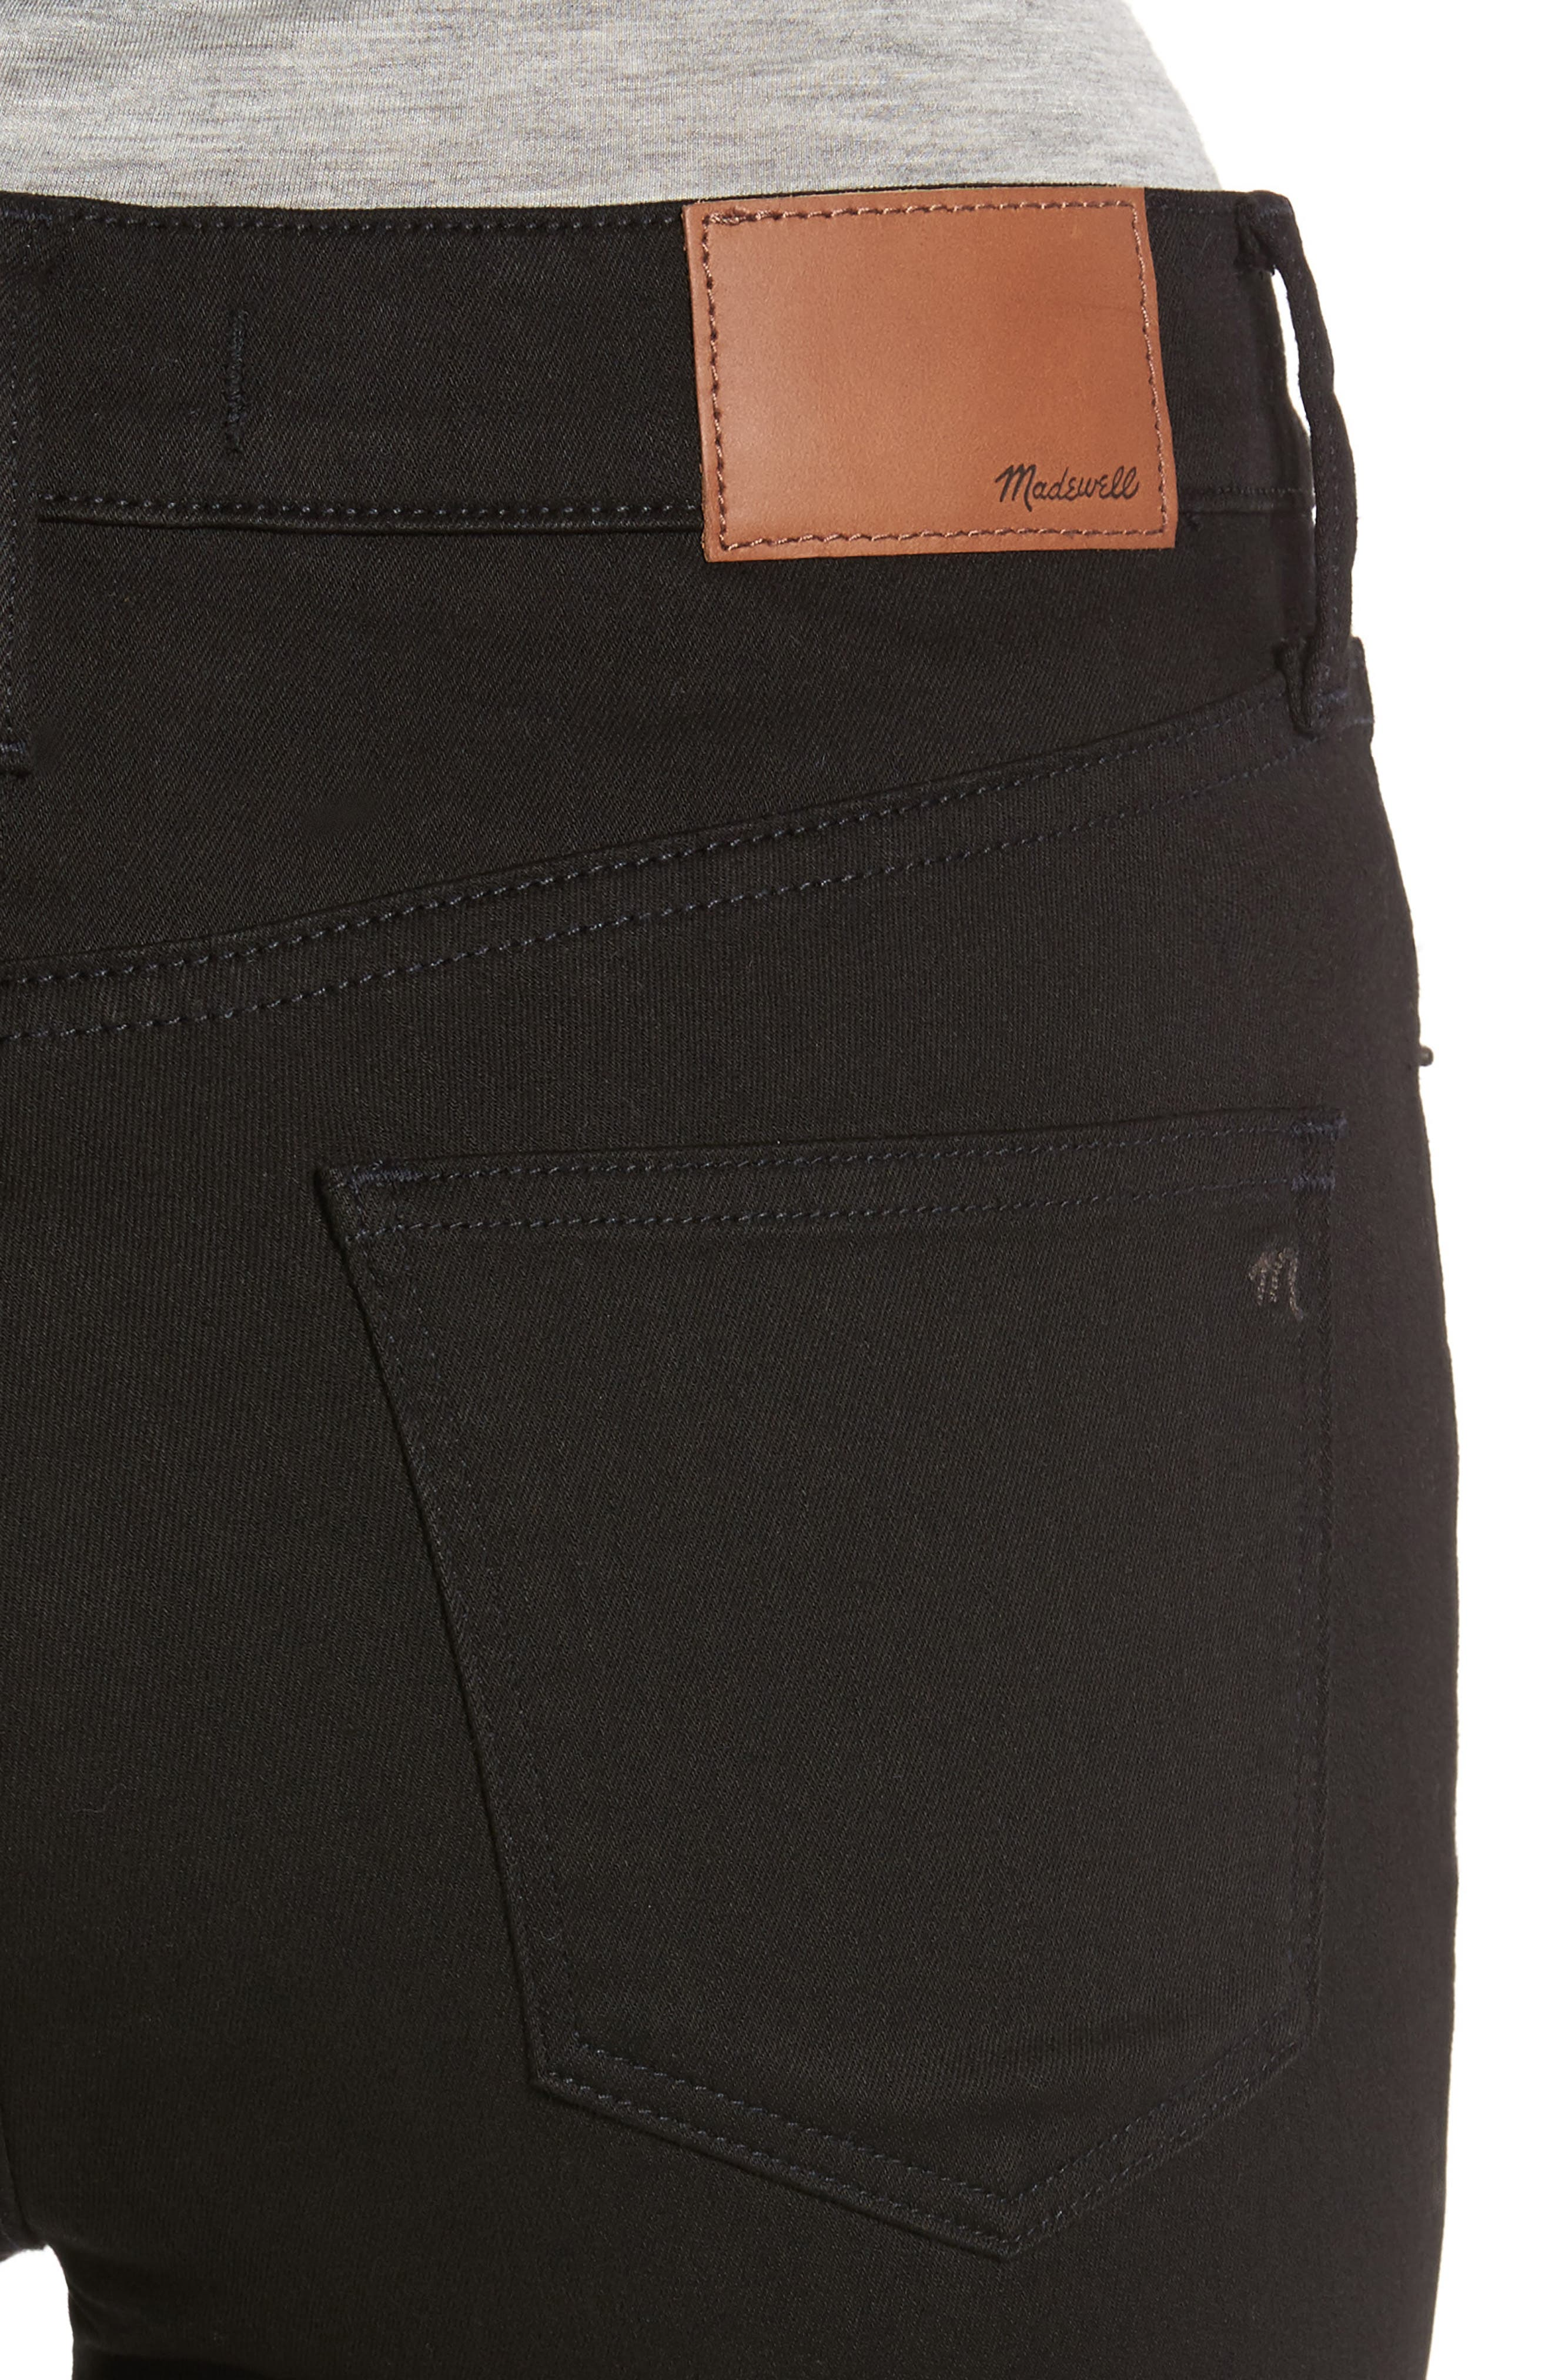 9-Inch High Waist Skinny Jeans,                             Alternate thumbnail 4, color,                             Black Frost